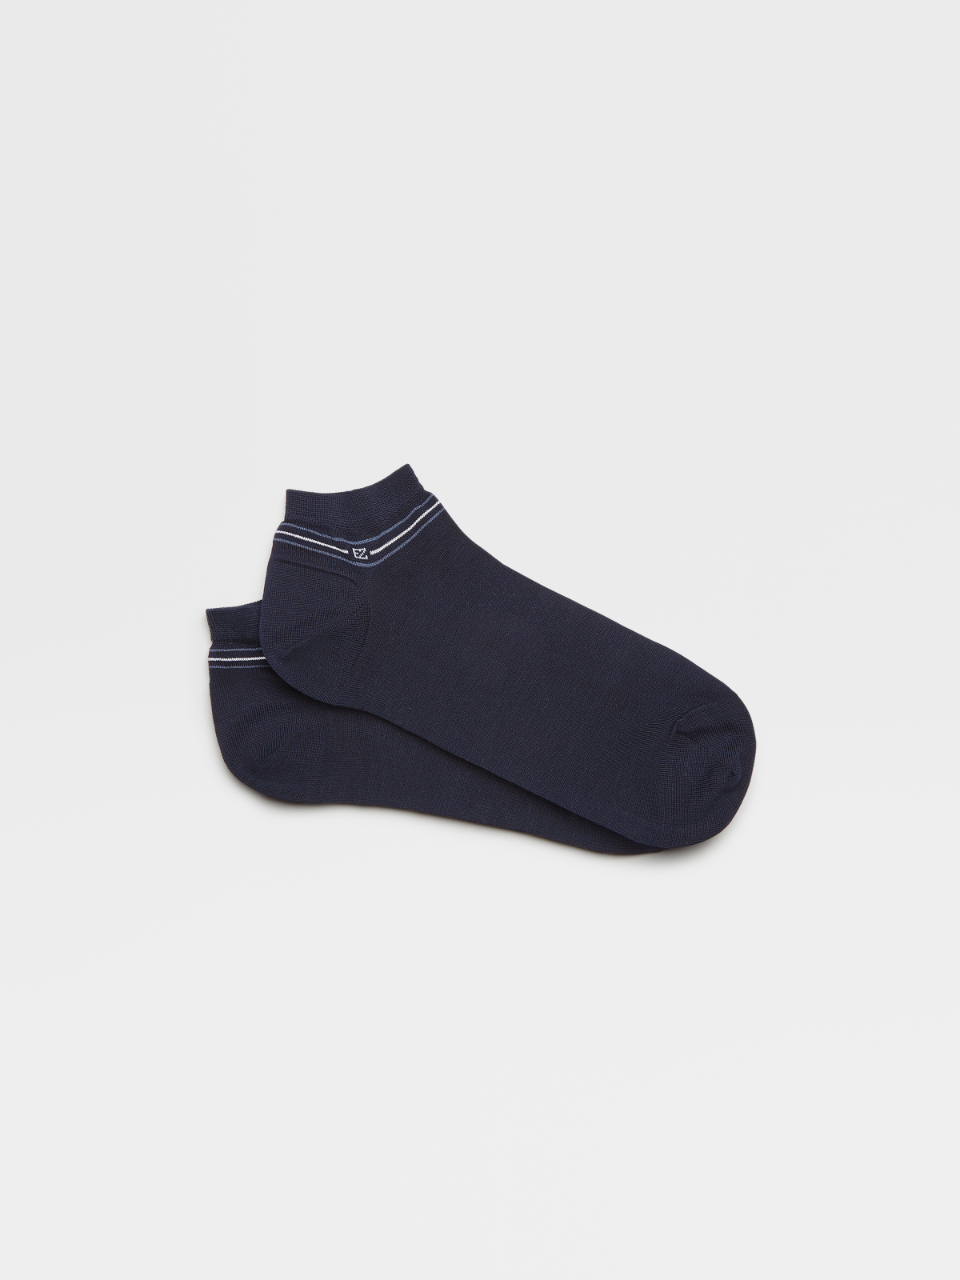 Cotton Blend Sneaker Socks